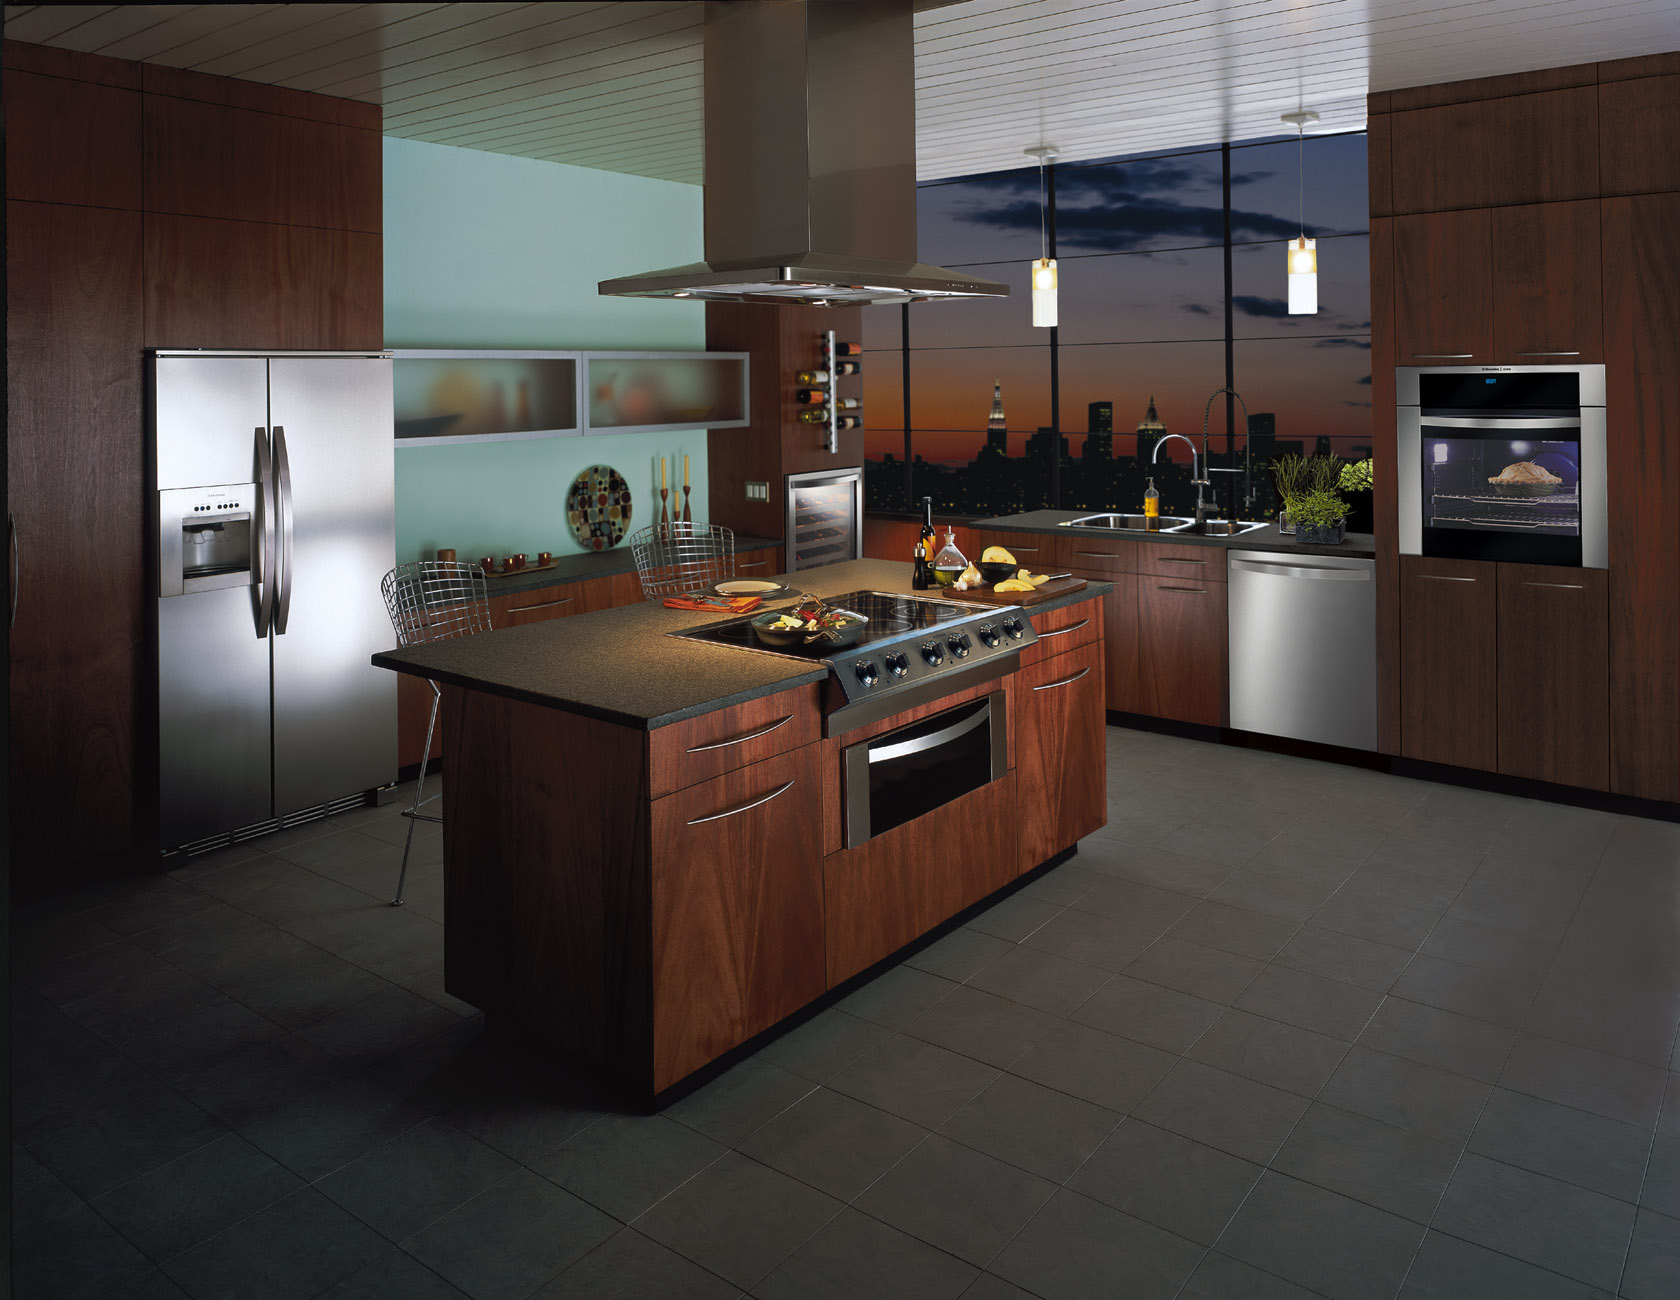 Amazing Kitchen Idea Bookferguson Bath, Kitchen & Lighting Gallery within Set Ferguson Bath Kitchen And Lighting Gallery